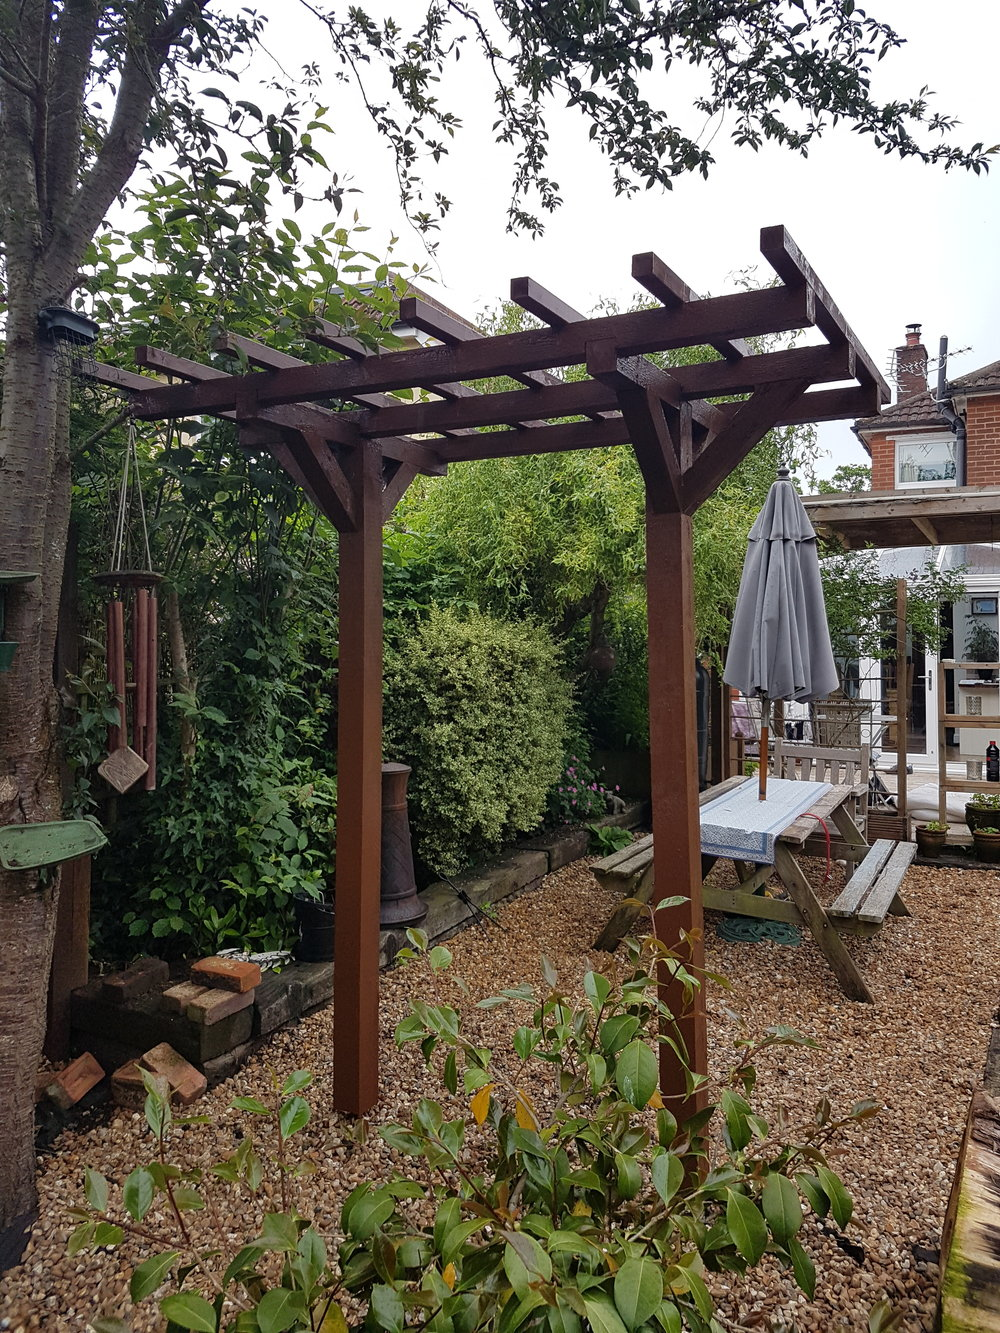 Pergola design and Garden maintenance in Chandlers Ford, Eastleigh, Southampton, Romsey, Winchester